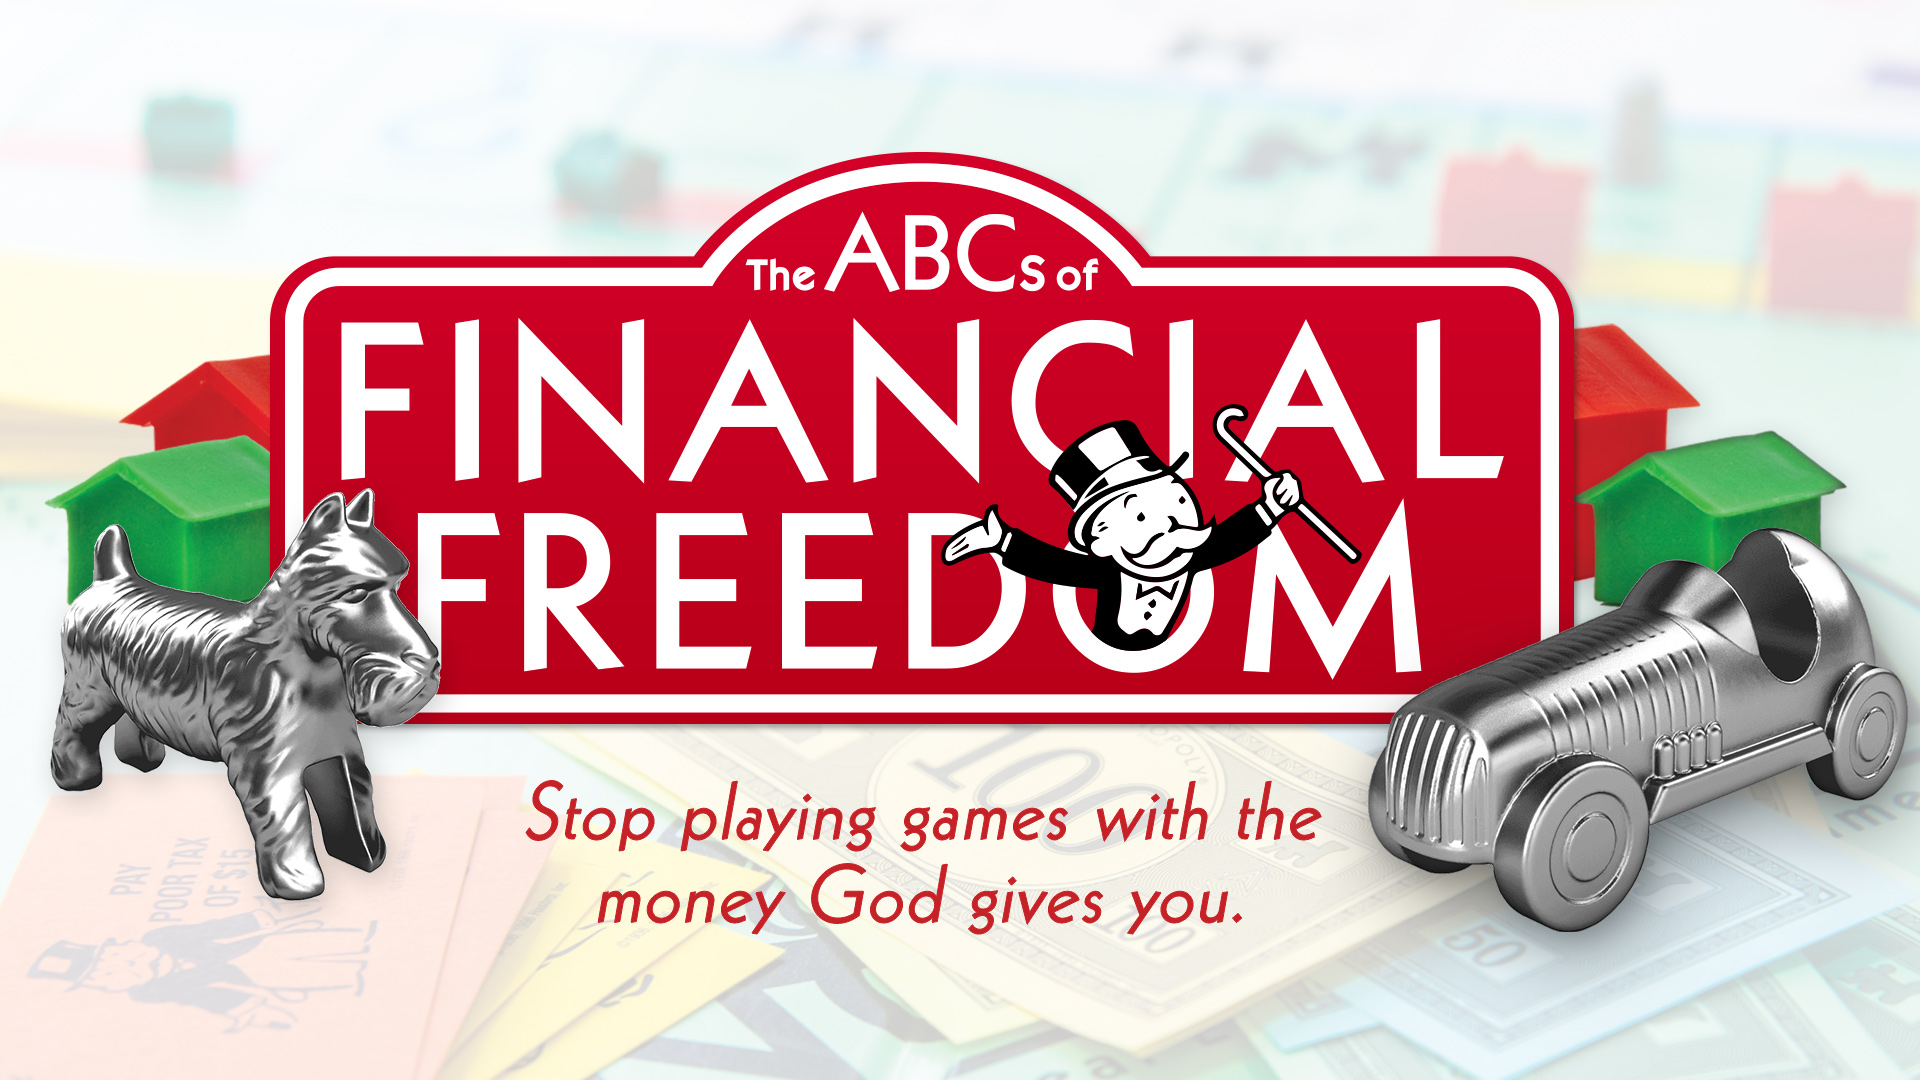 The ABCs of Financial Freedom (2017)